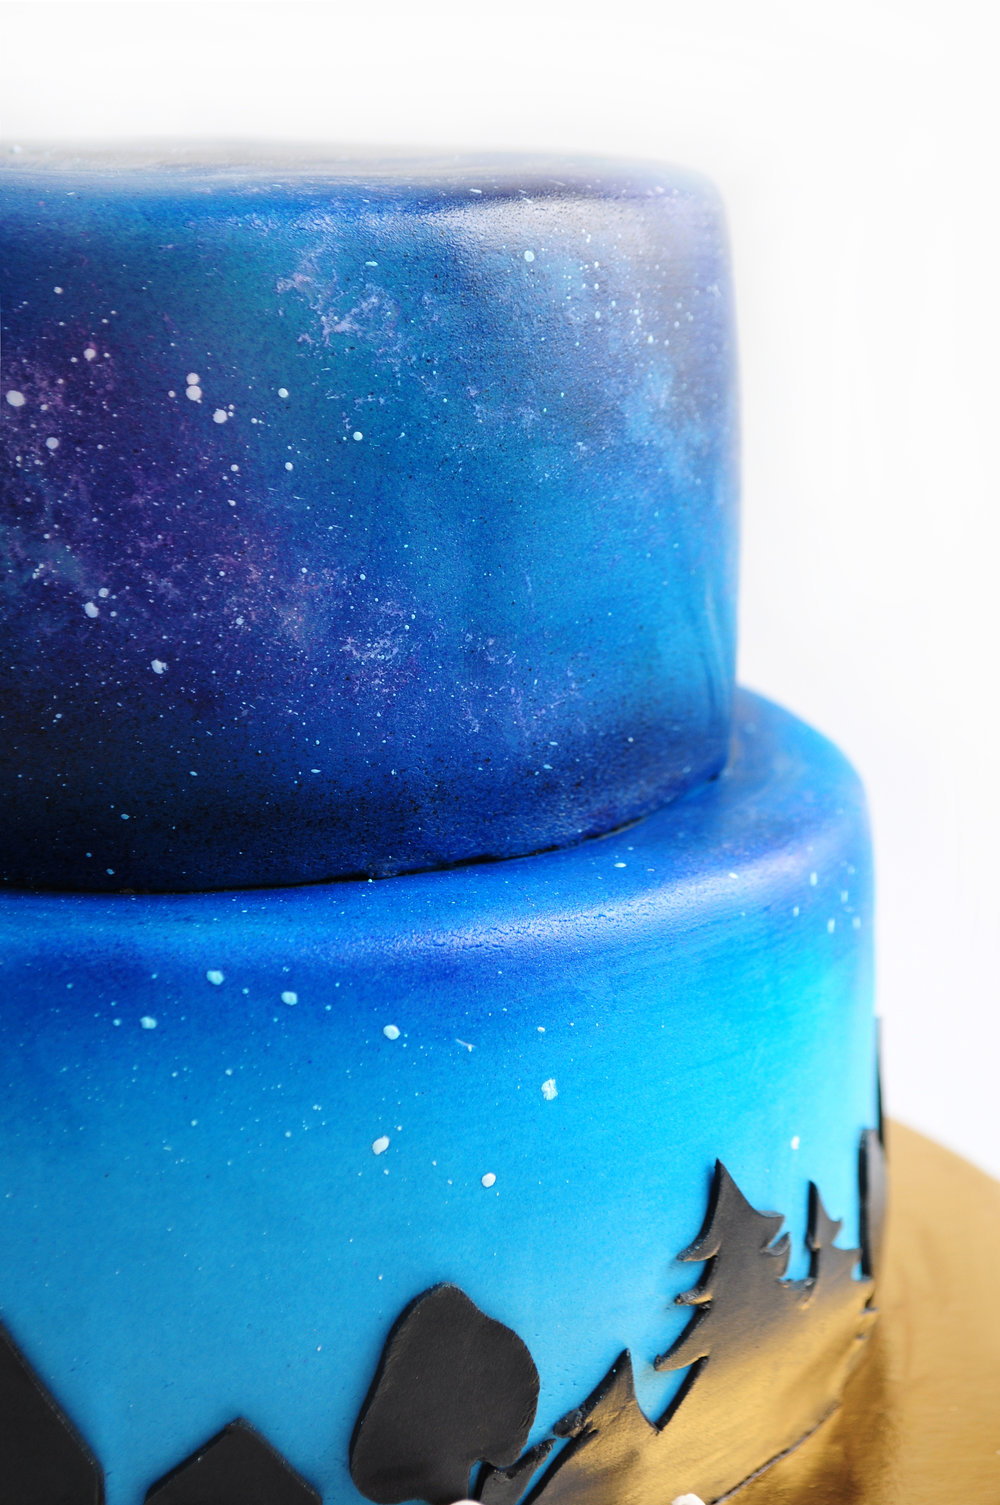 bigstock-Artistic-Two-tiered-Cake-With--259219924.jpg